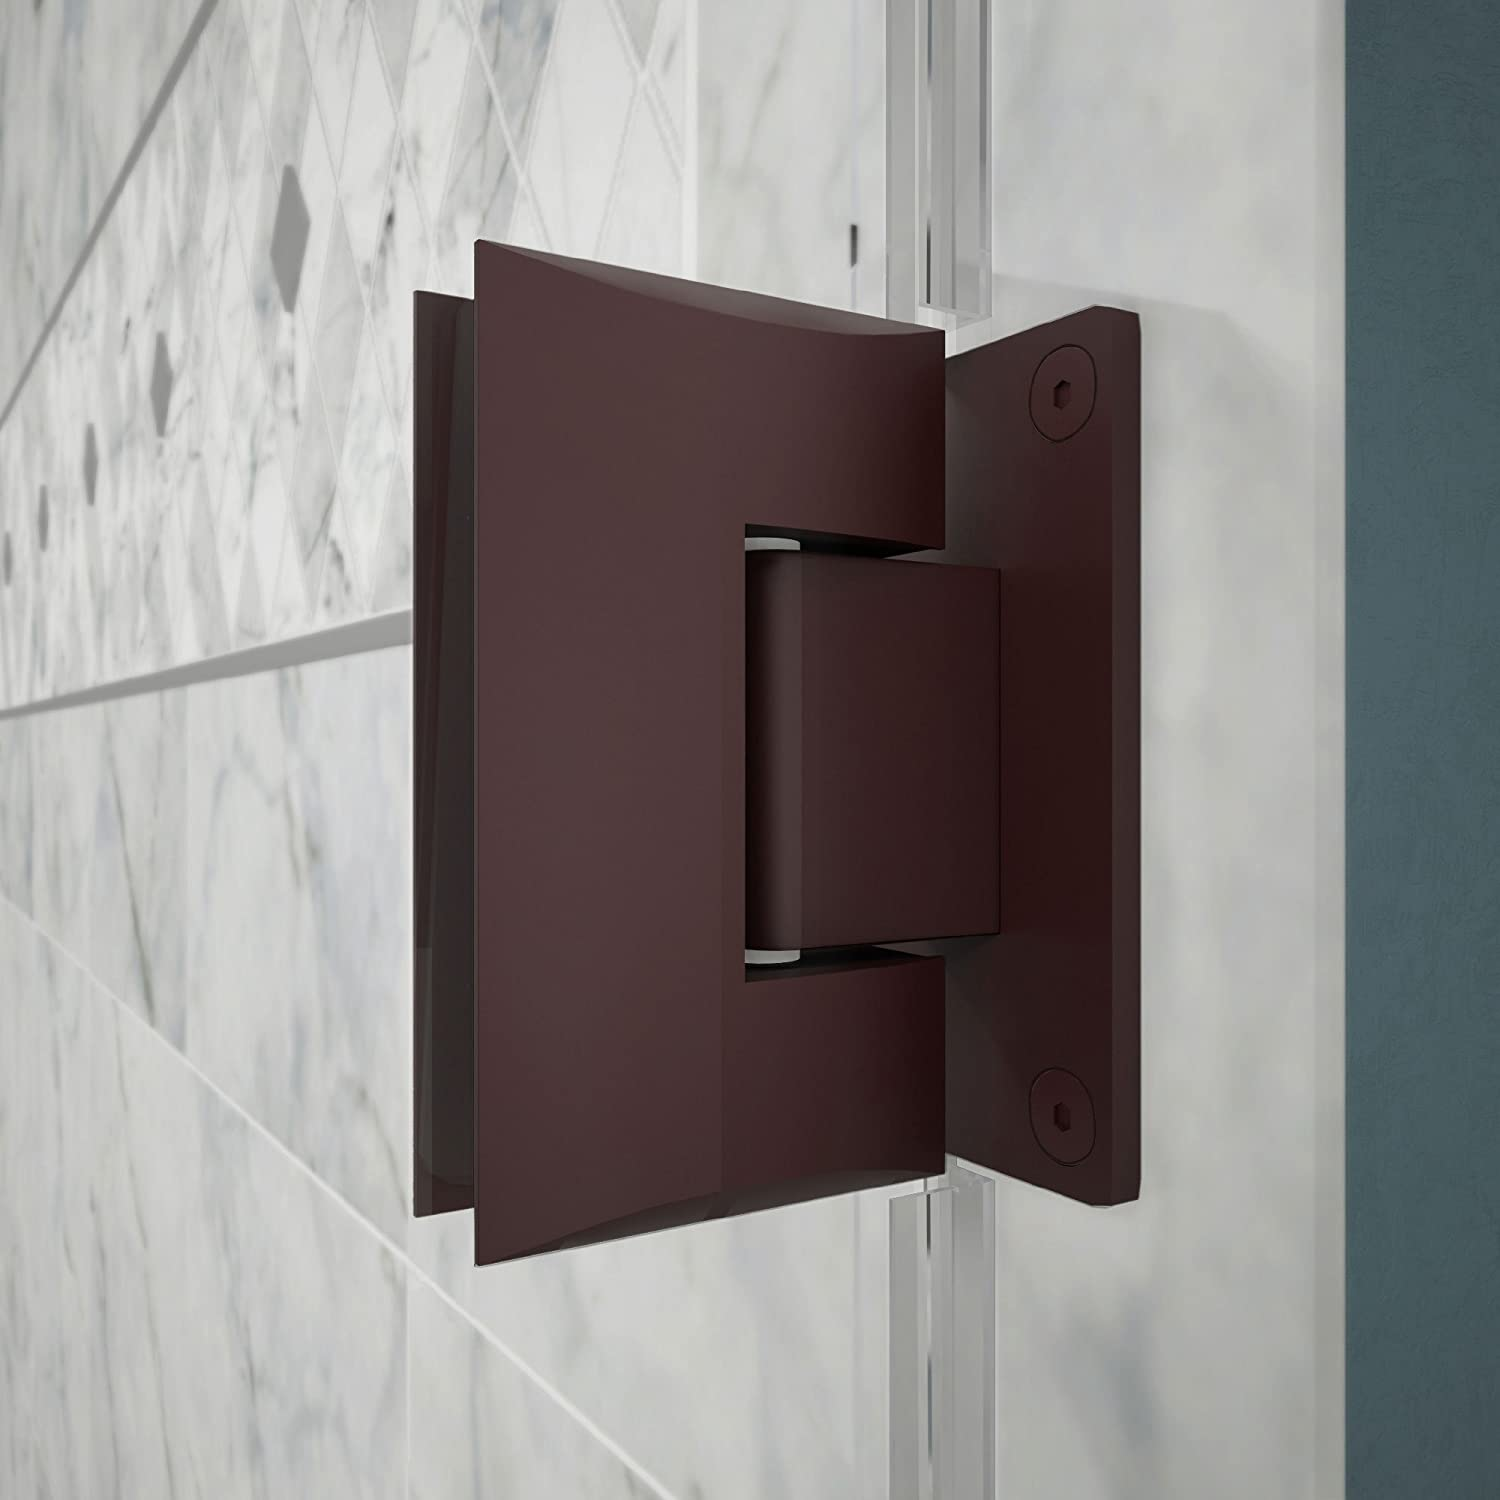 DreamLine Unidoor 59-60 in. W x 72 in. H Frameless Hinged Shower Door with Shelves in Oil Rubbed Bronze, SHDR-20597210S-06